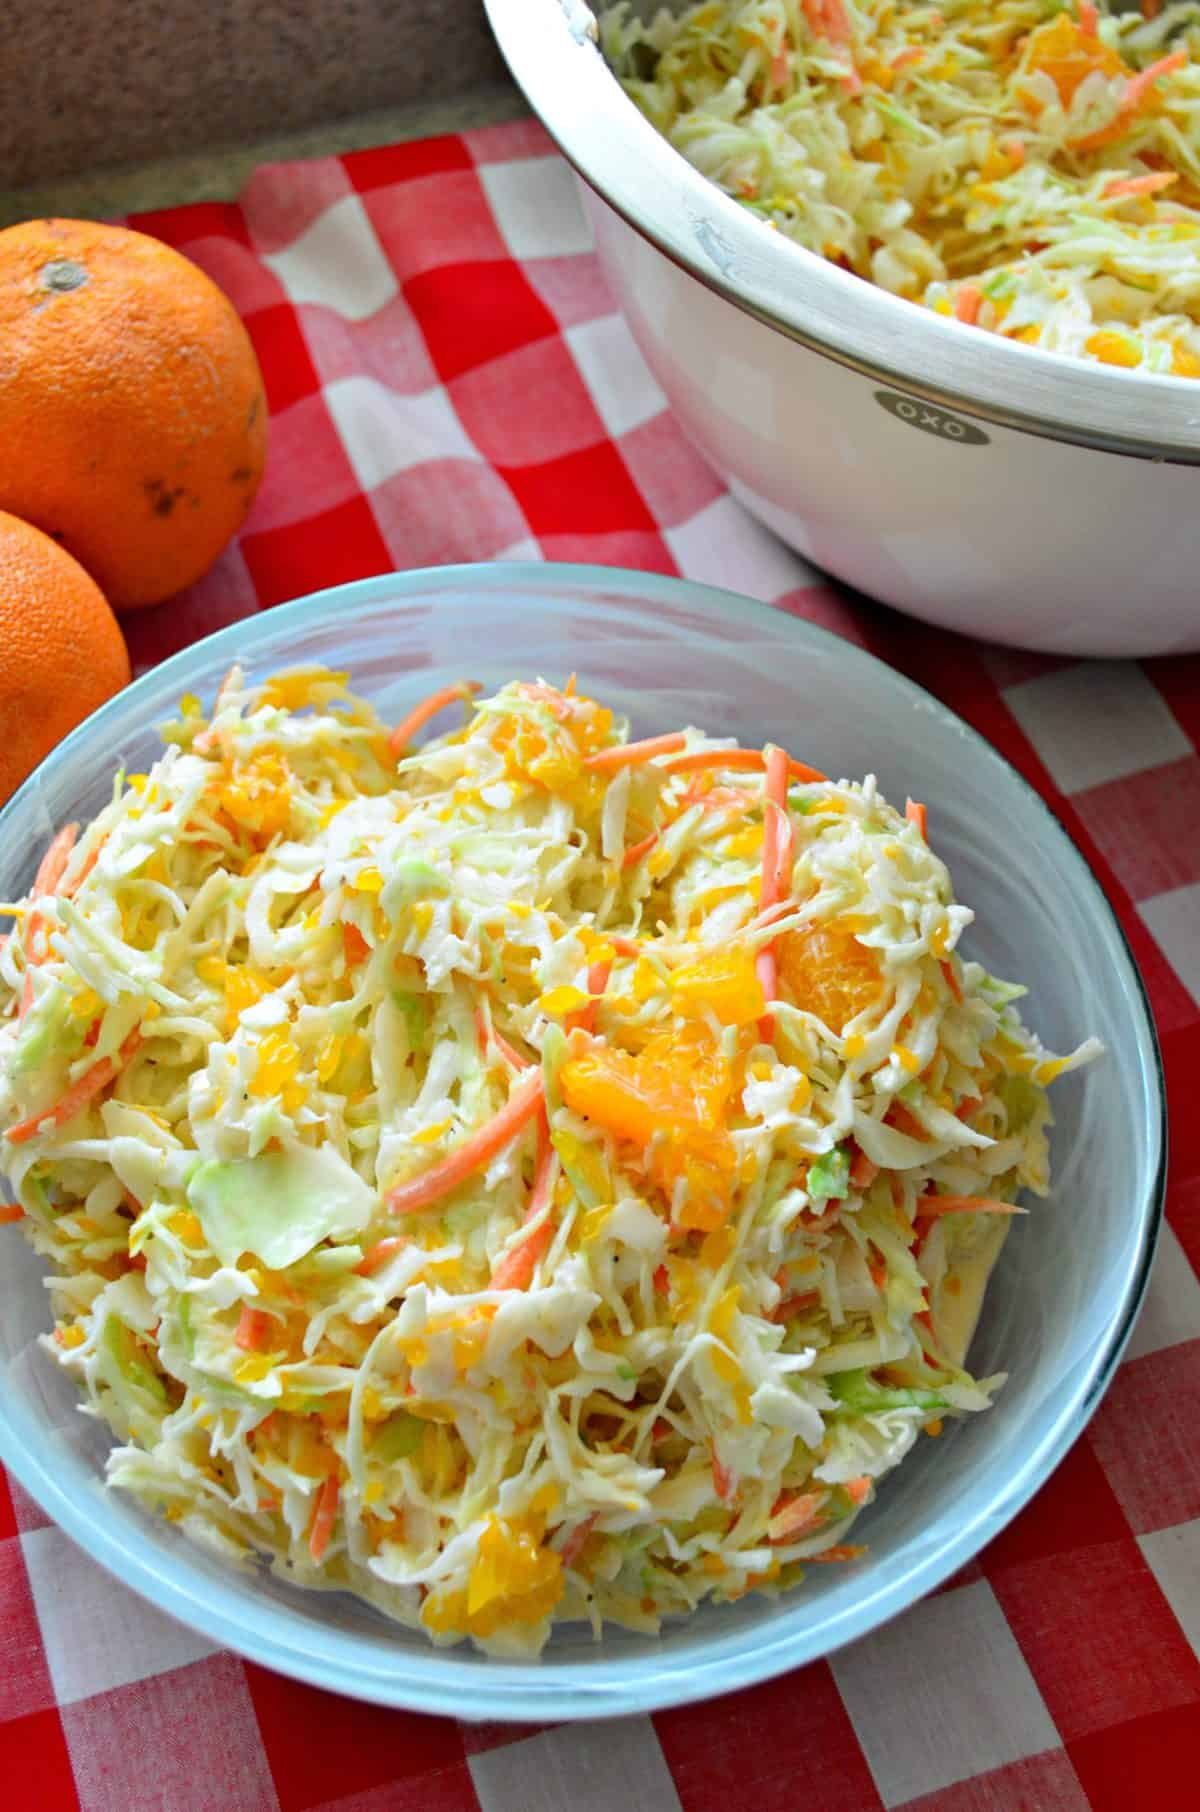 Overhead view of coleslaw with oranges on a red and white checkered cloth.